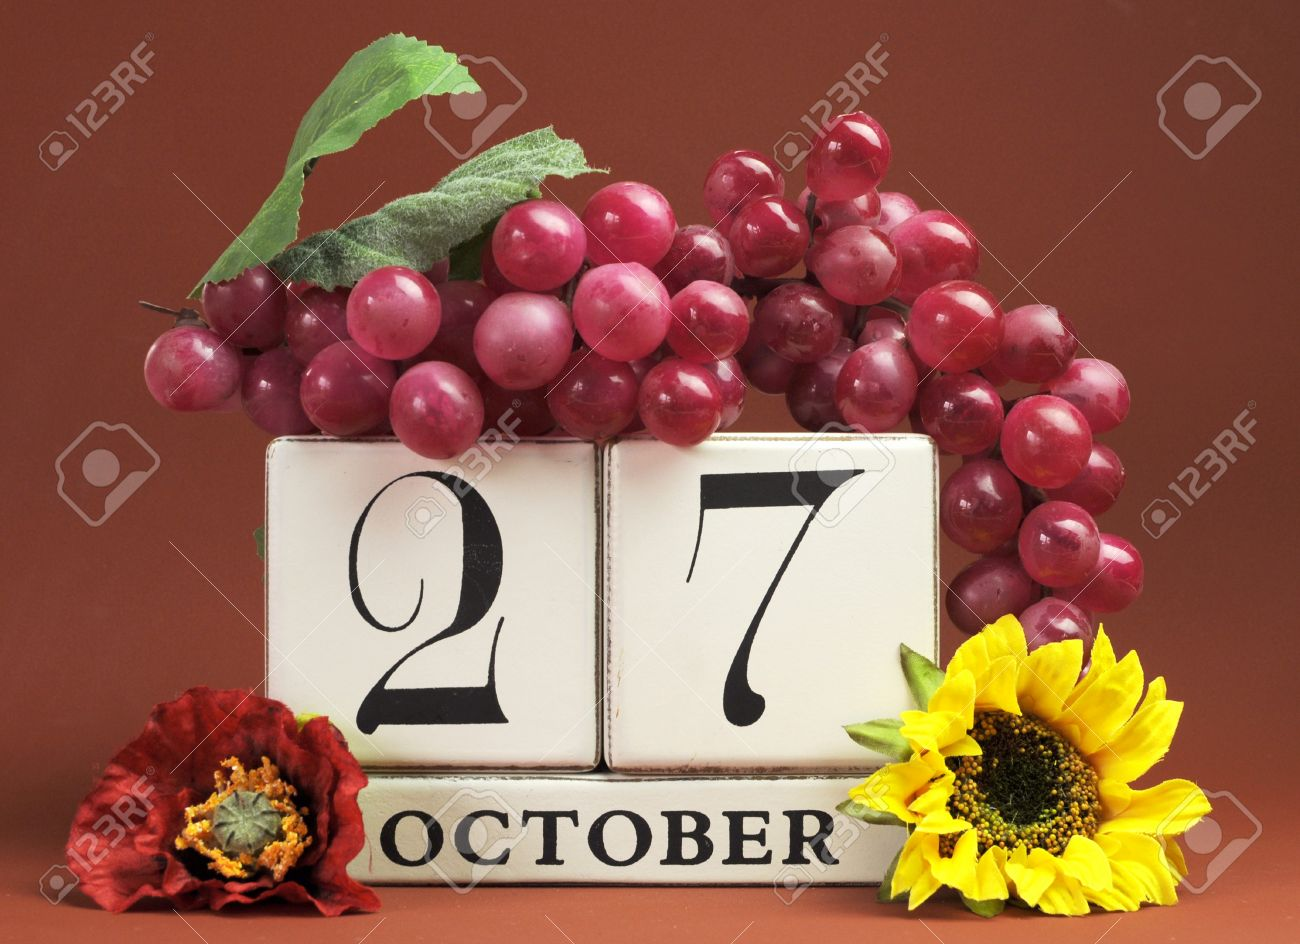 Save The Date White Block Calendar For October 27 With Autumn